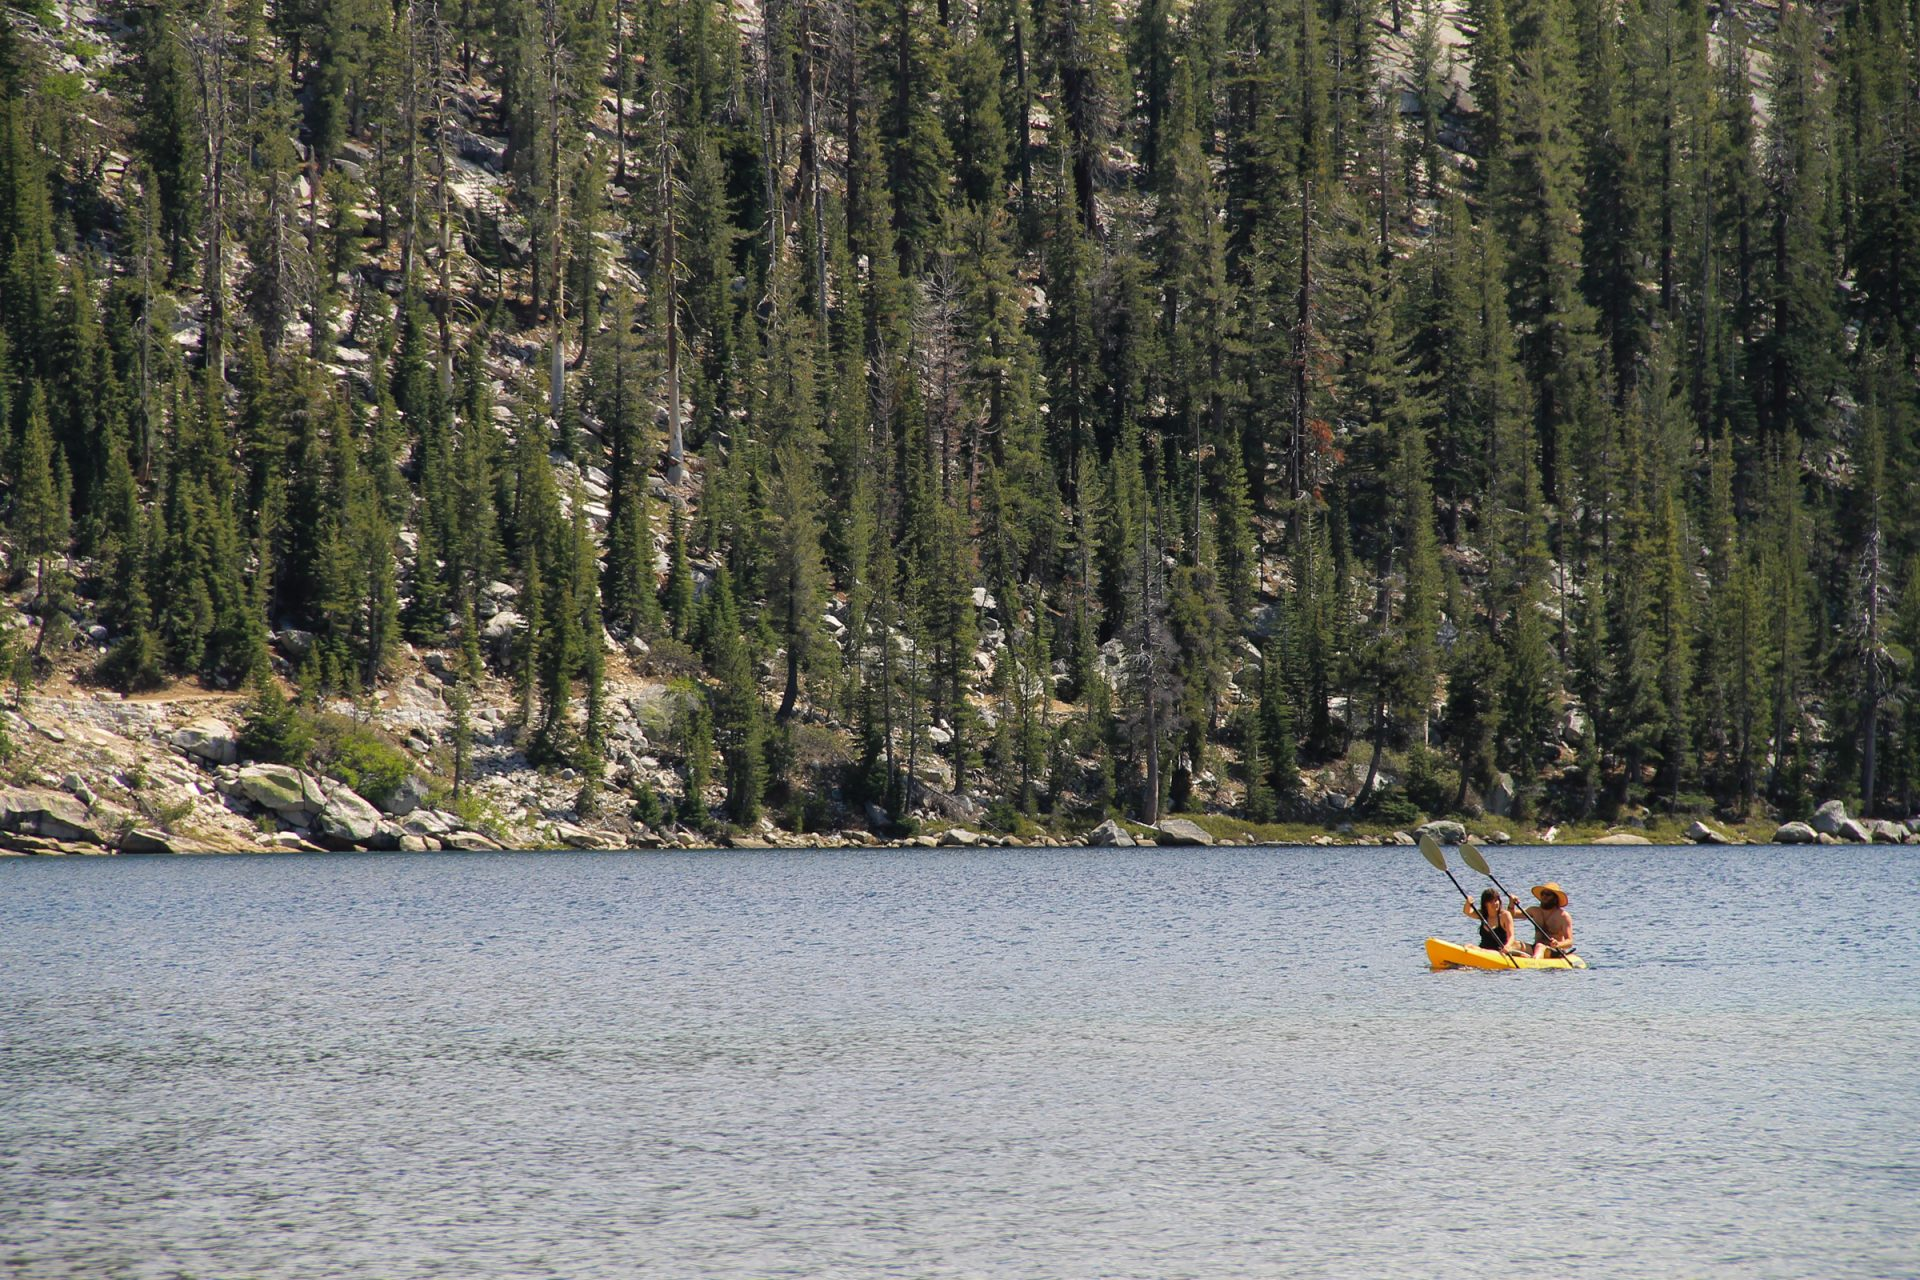 Couple Kayaking on a Lake by Forest